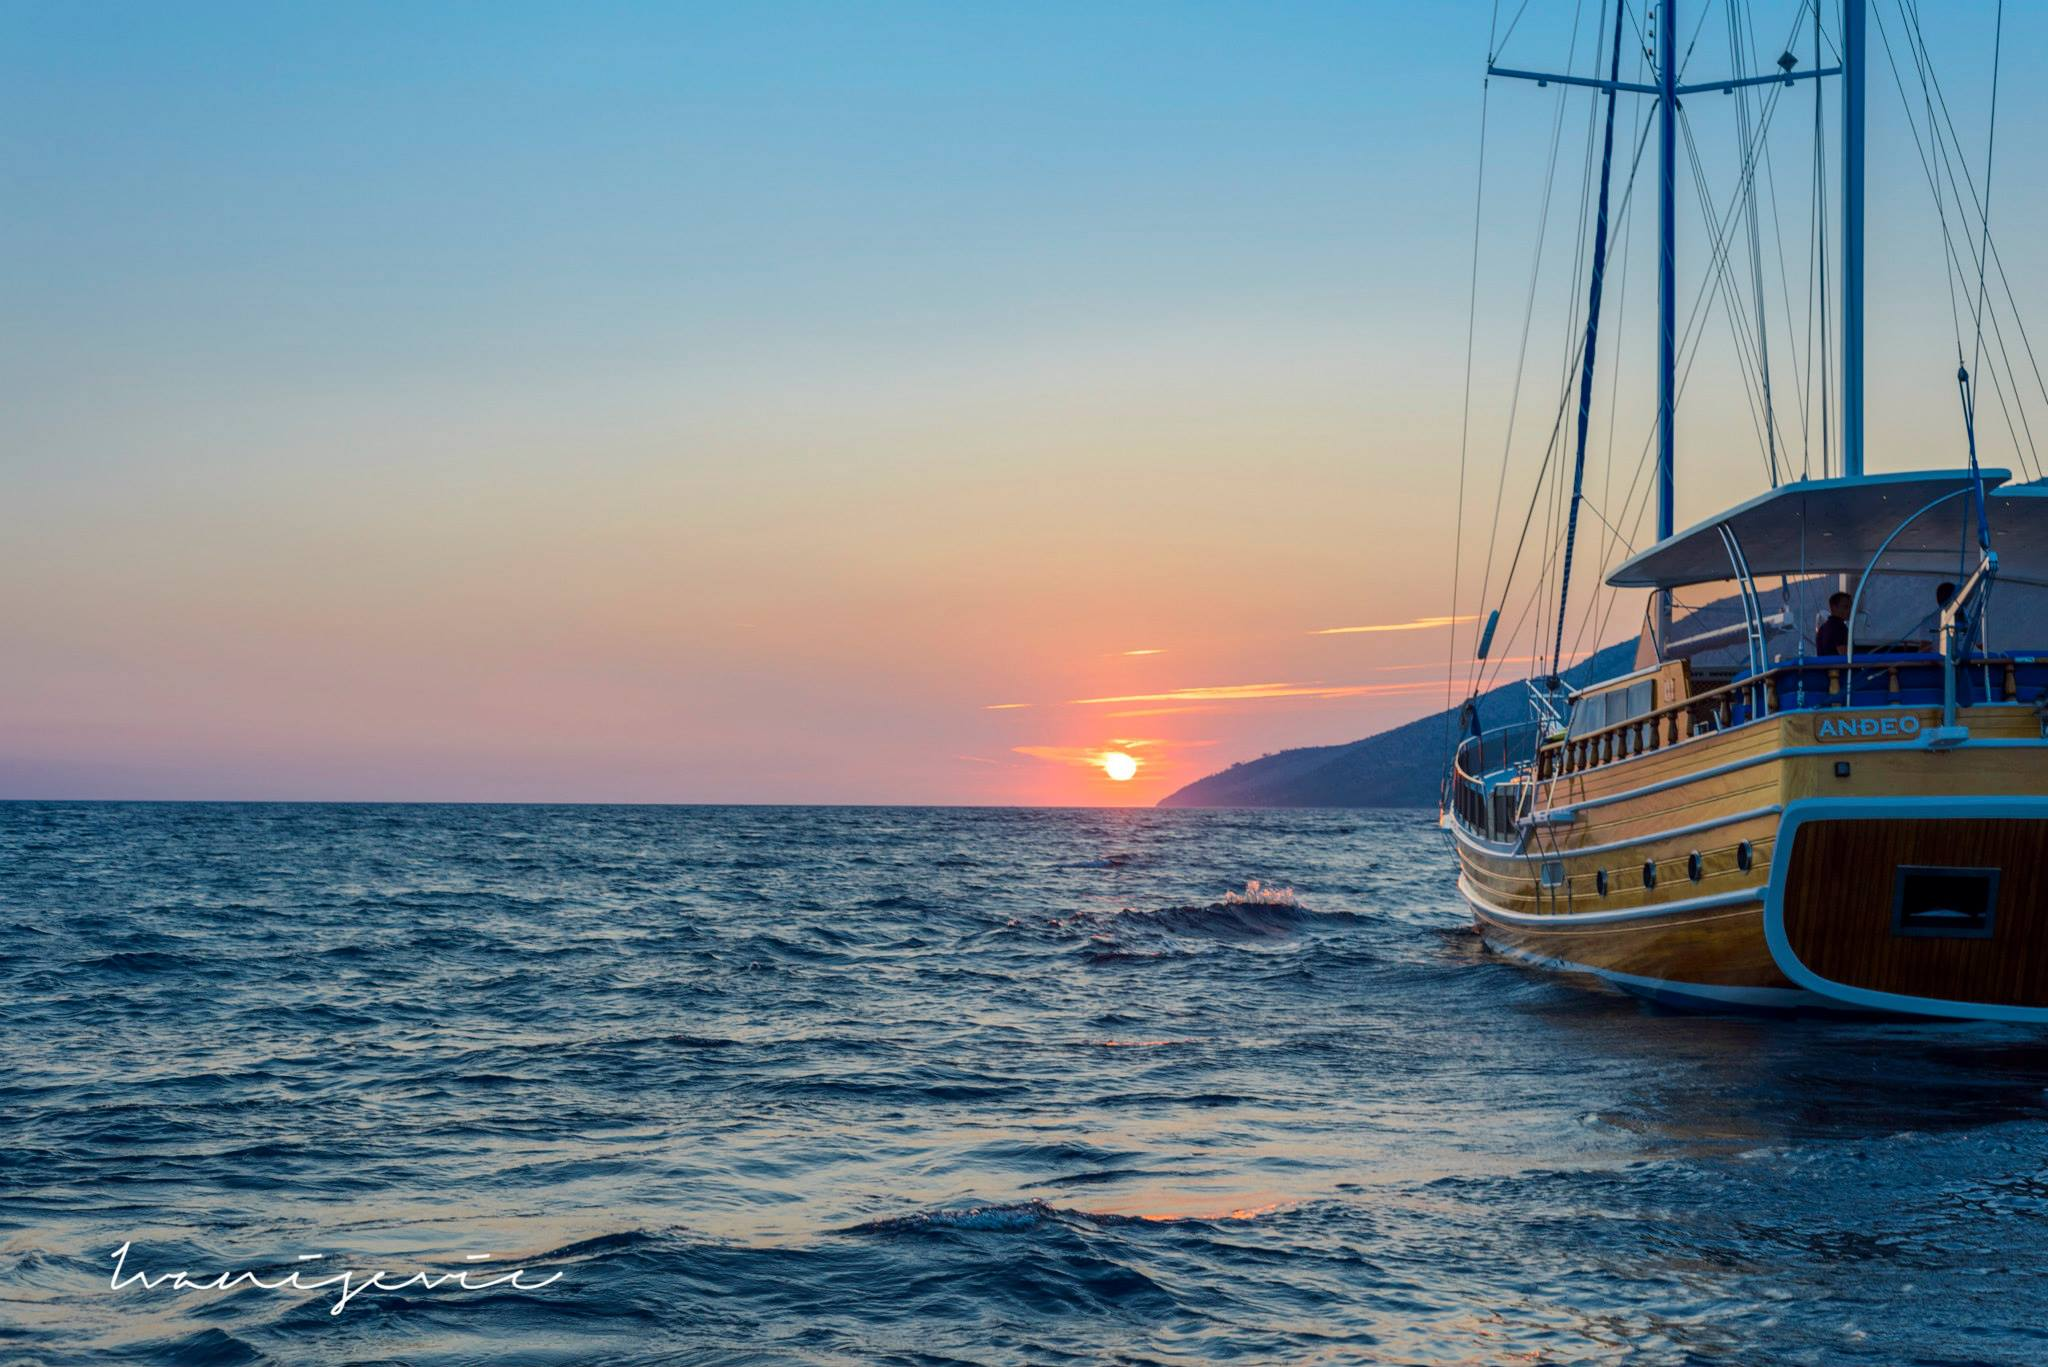 ANDEAO gulet in Croatia at sunset